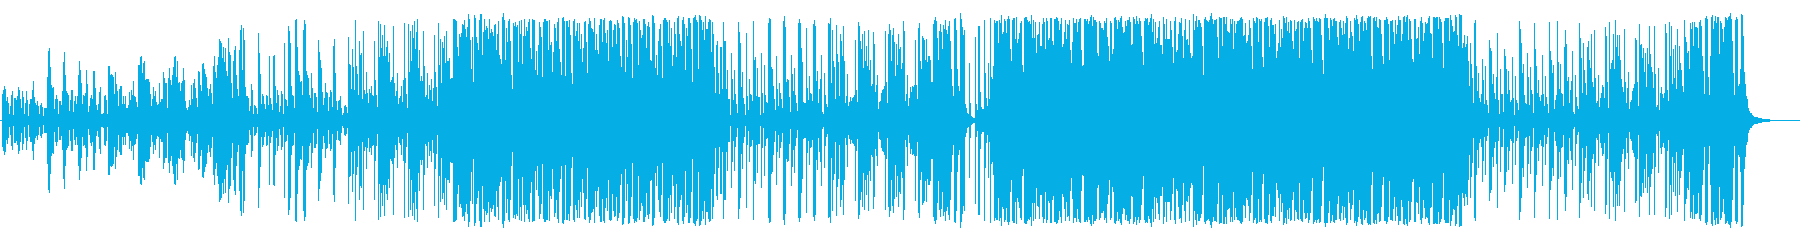 Interesting and entertaining musicians's reproduced waveform